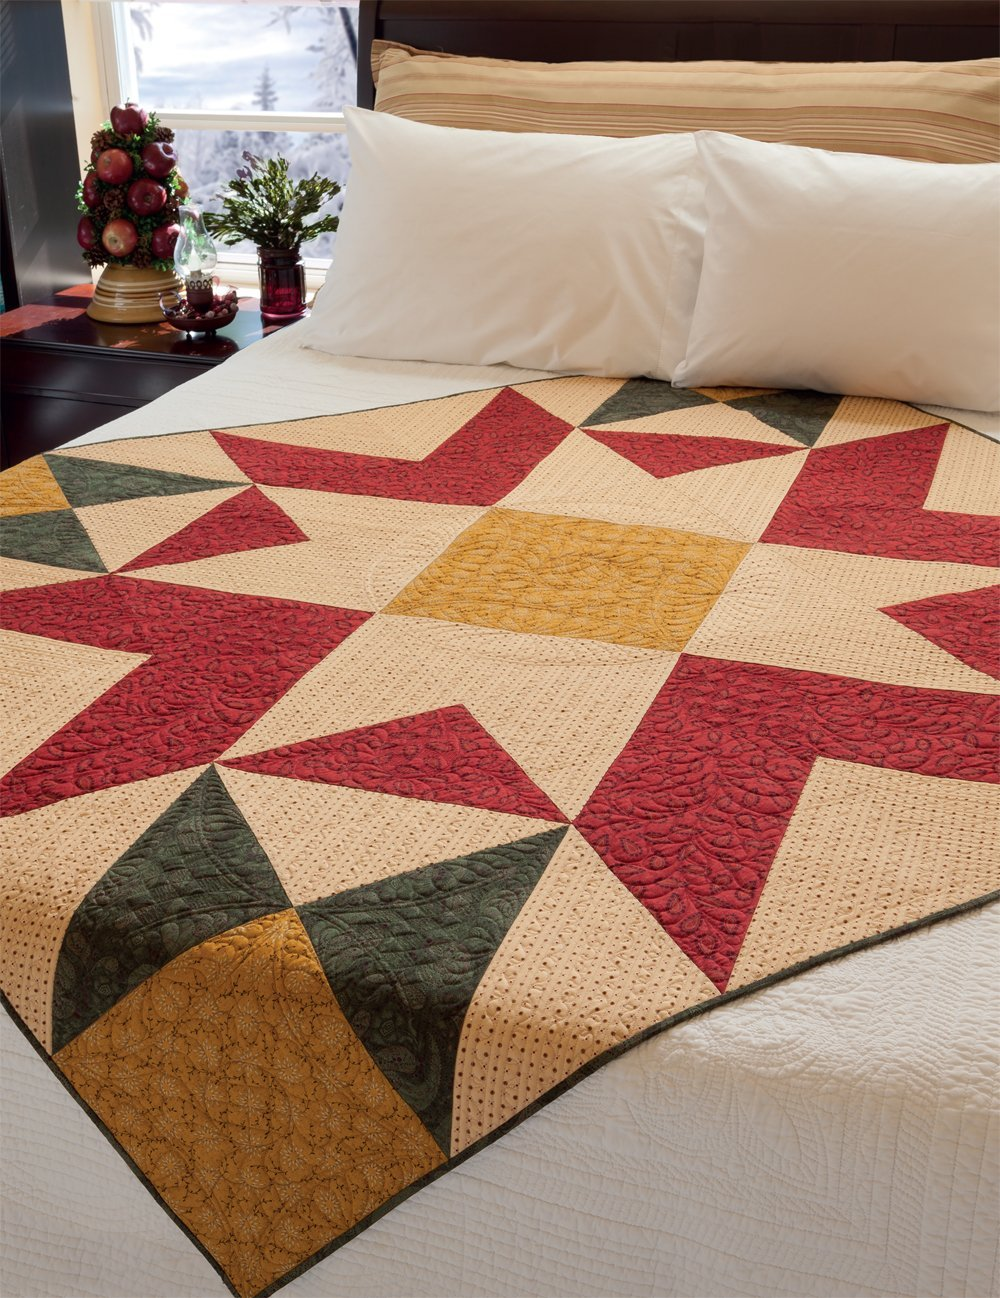 Simple Christmas Tidings Quilt Project Book by Kim Diehl